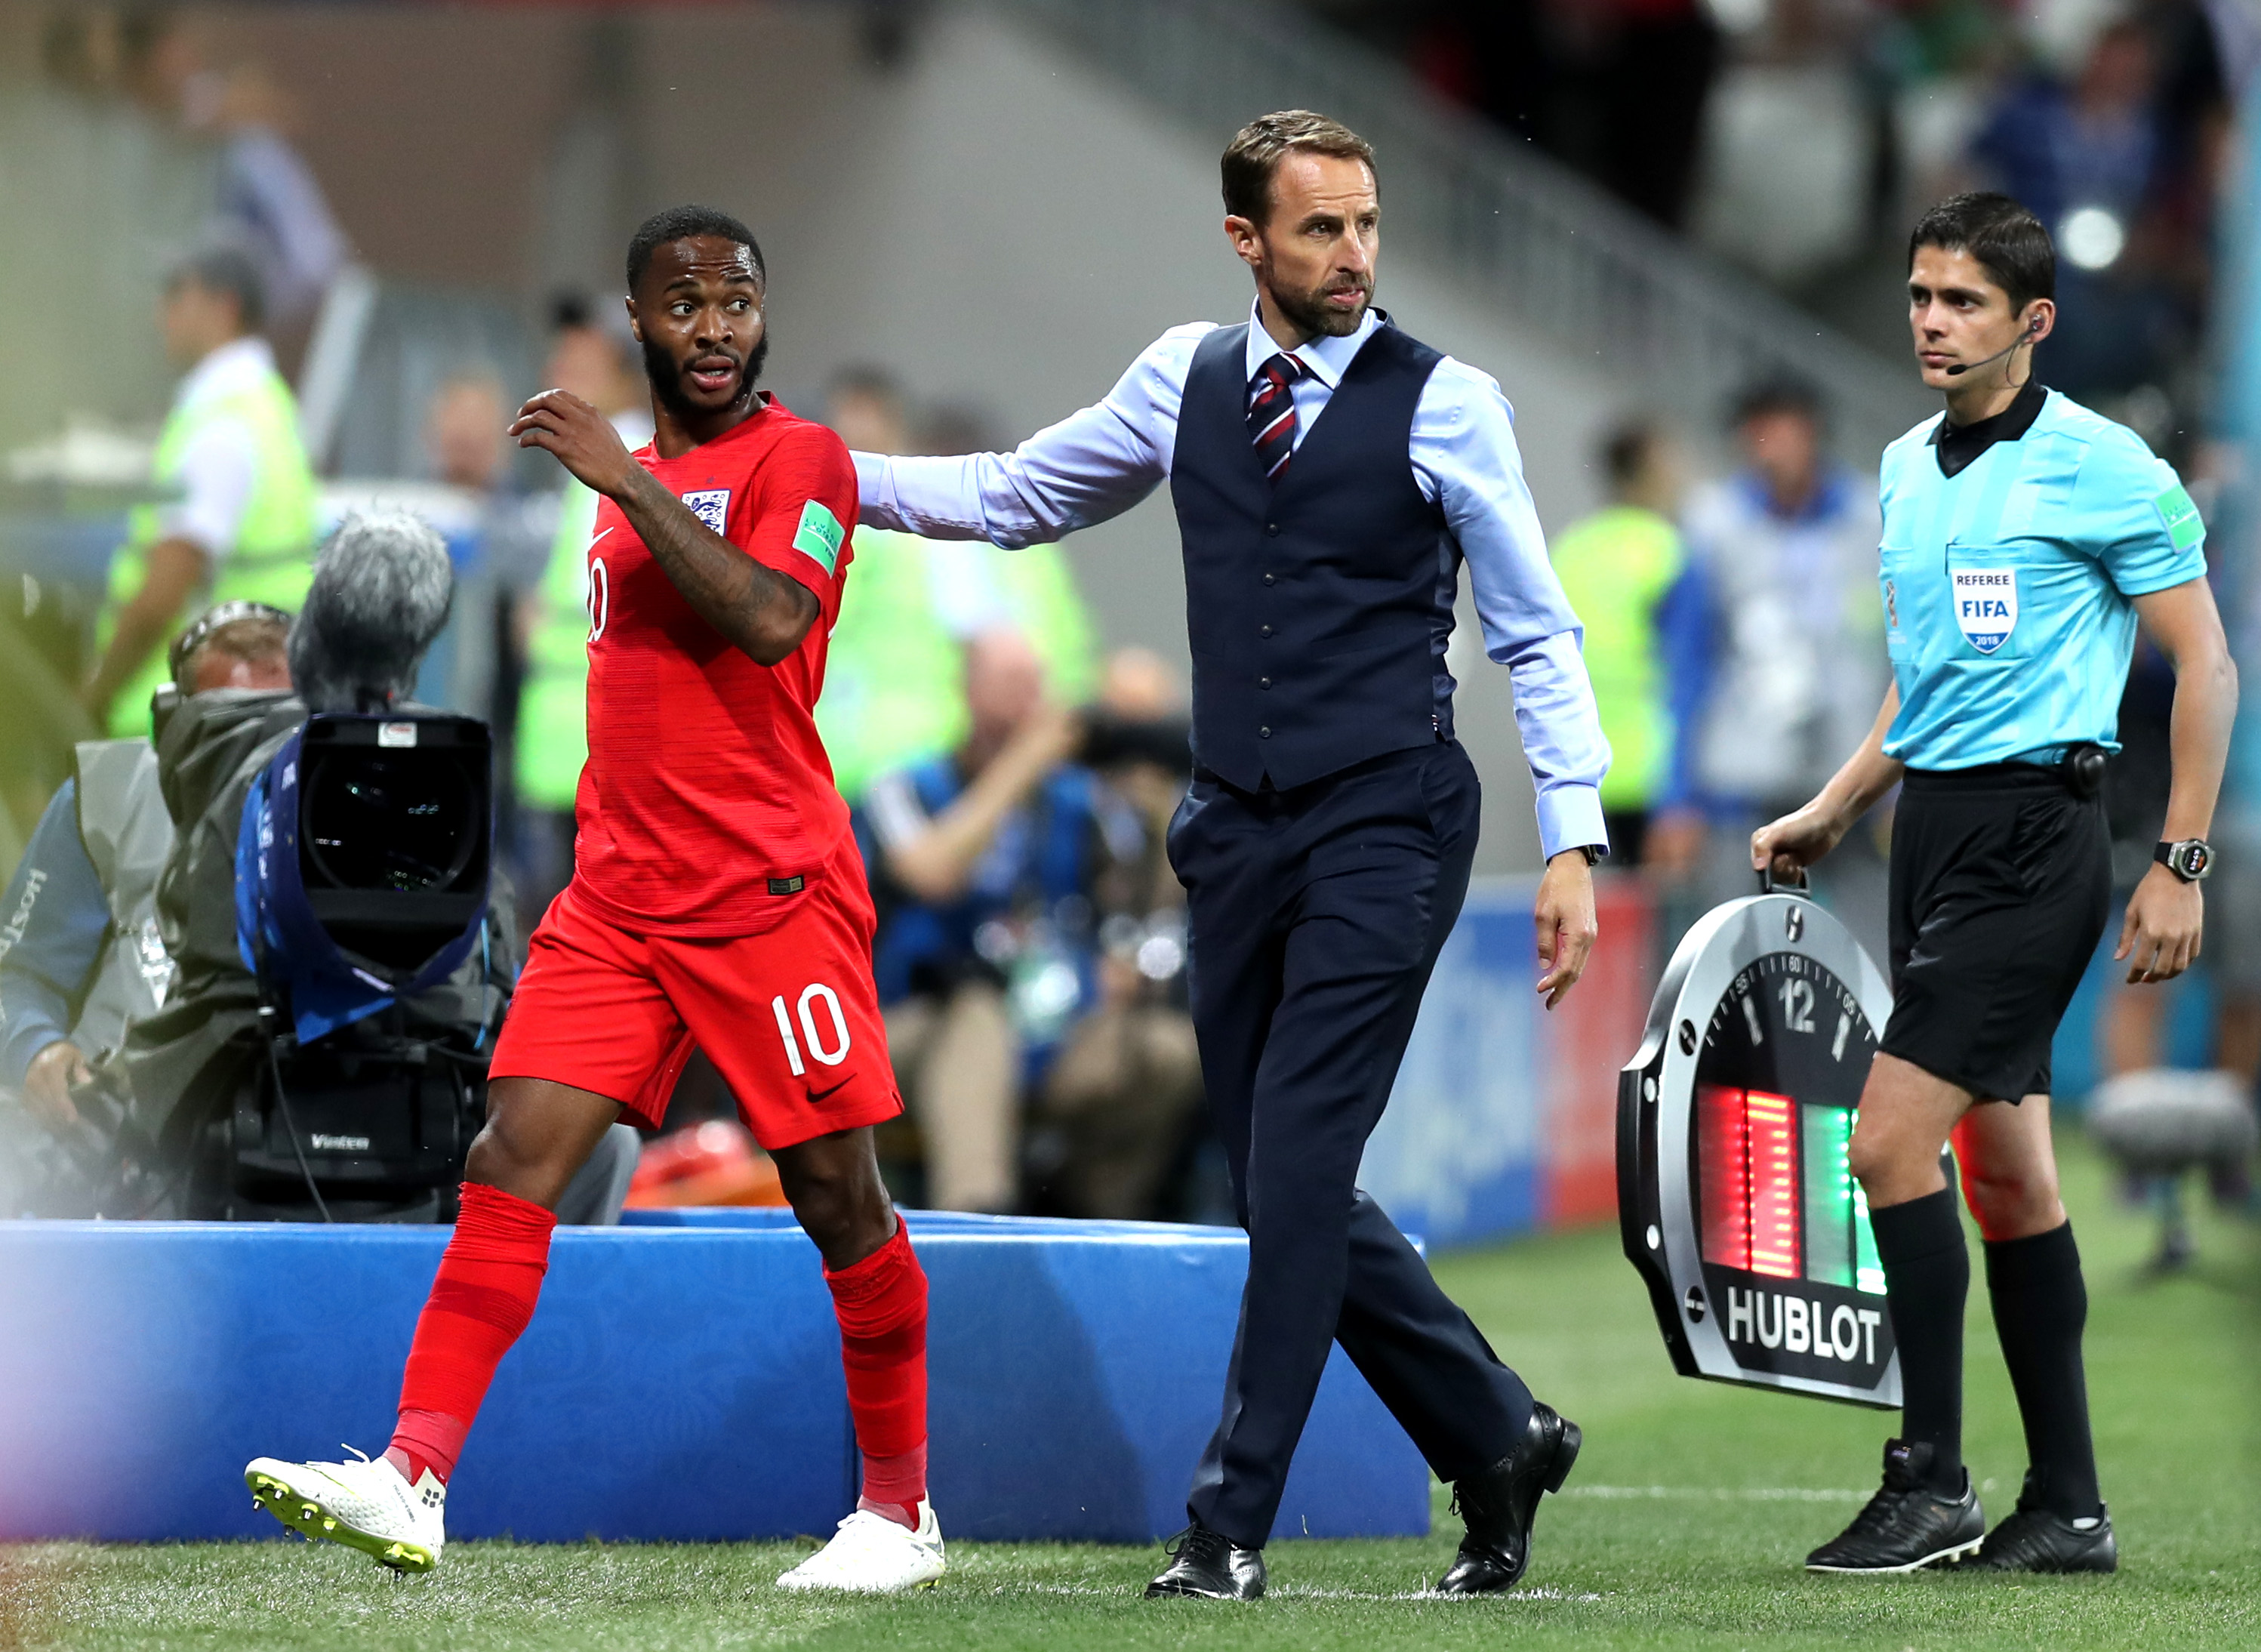 England captain full of praise for Southgate's impact on squad